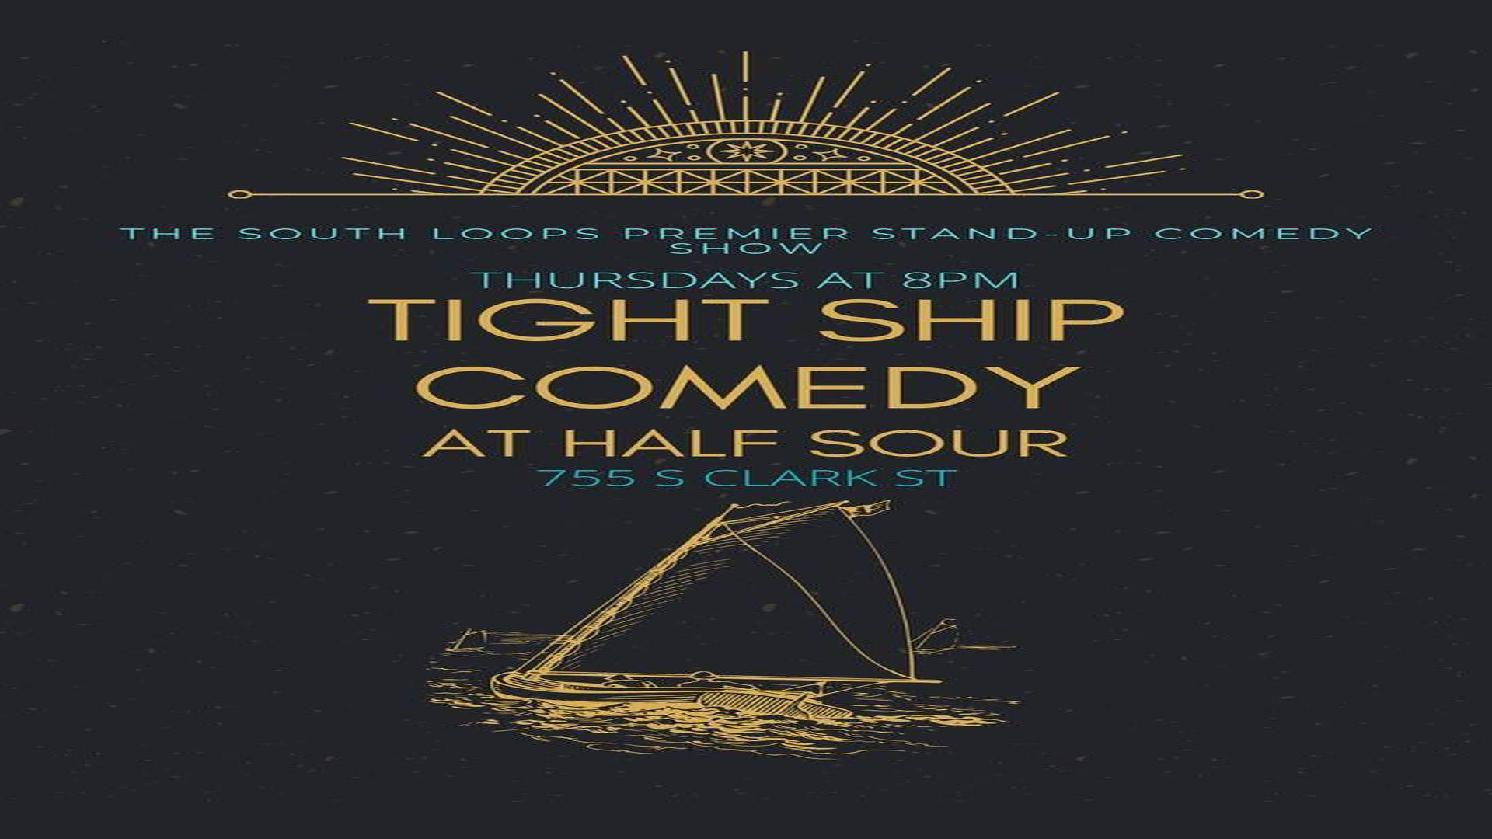 Tight Ship Comedy! A live stand-up comedy show!